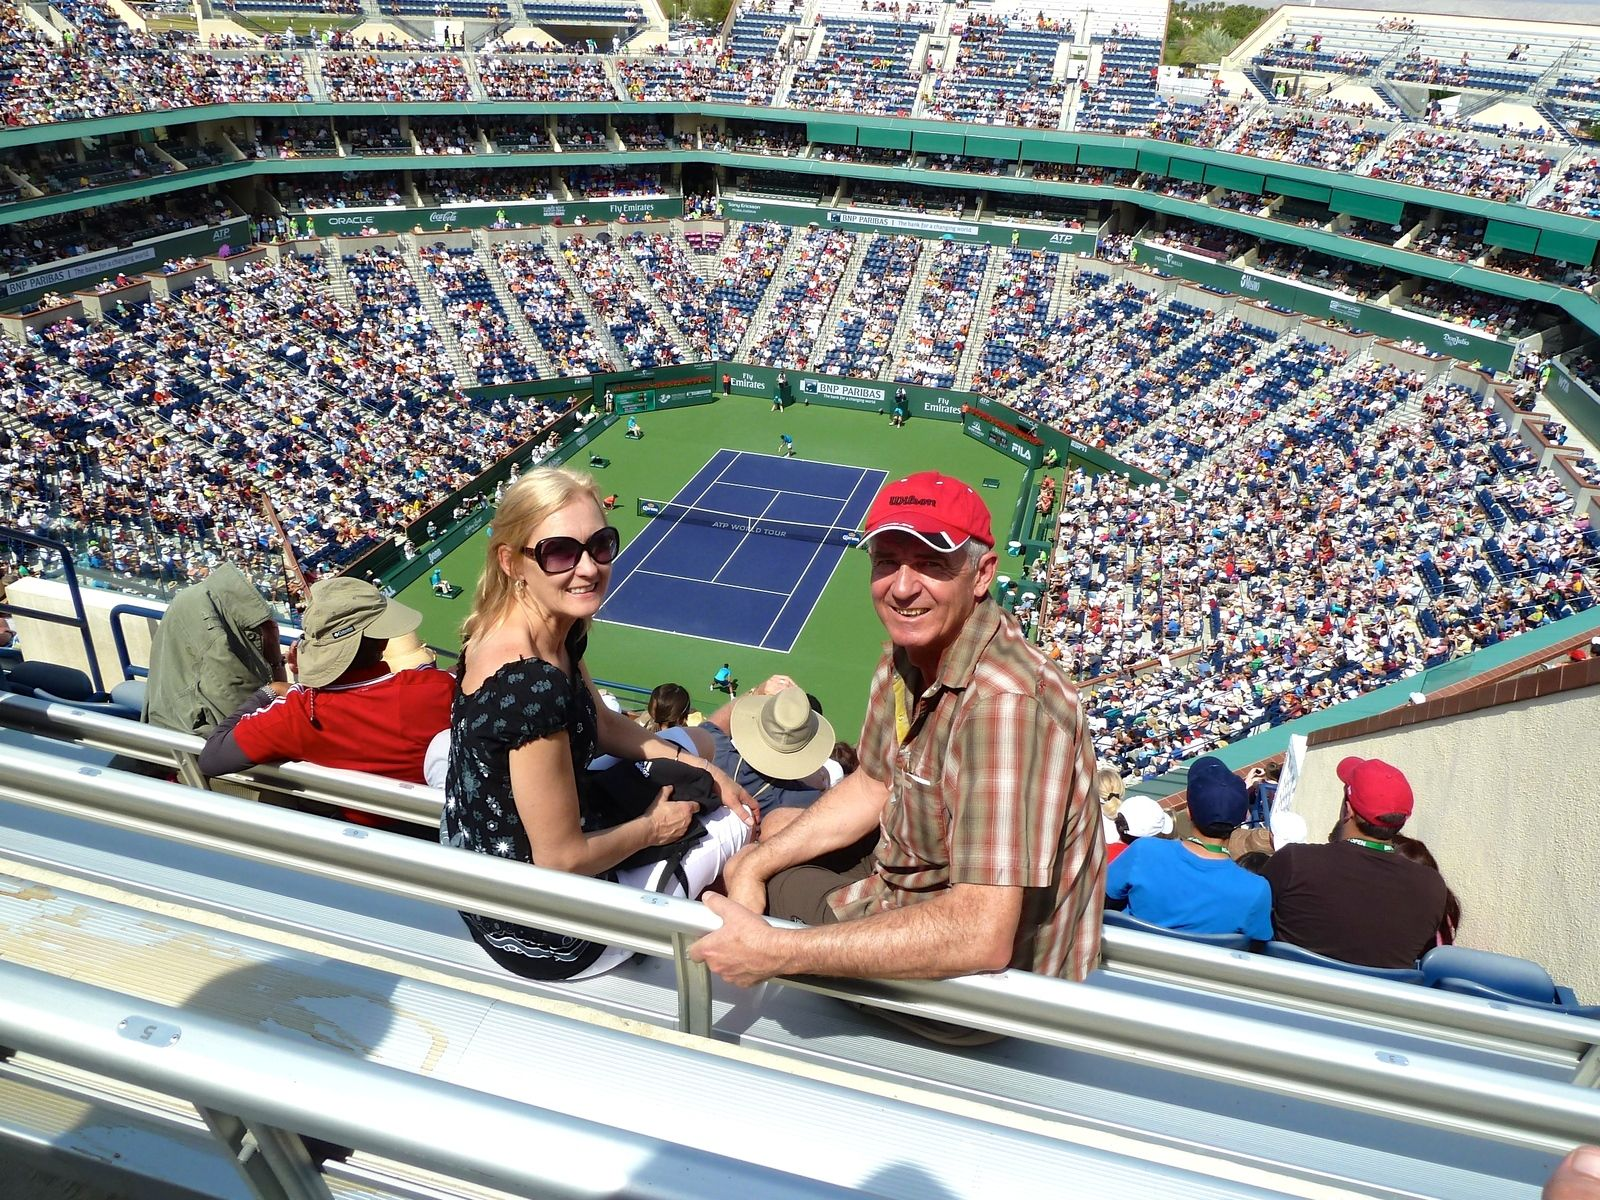 tennis tourist indian wells fans teri church - Indian Wells Tennis Garden